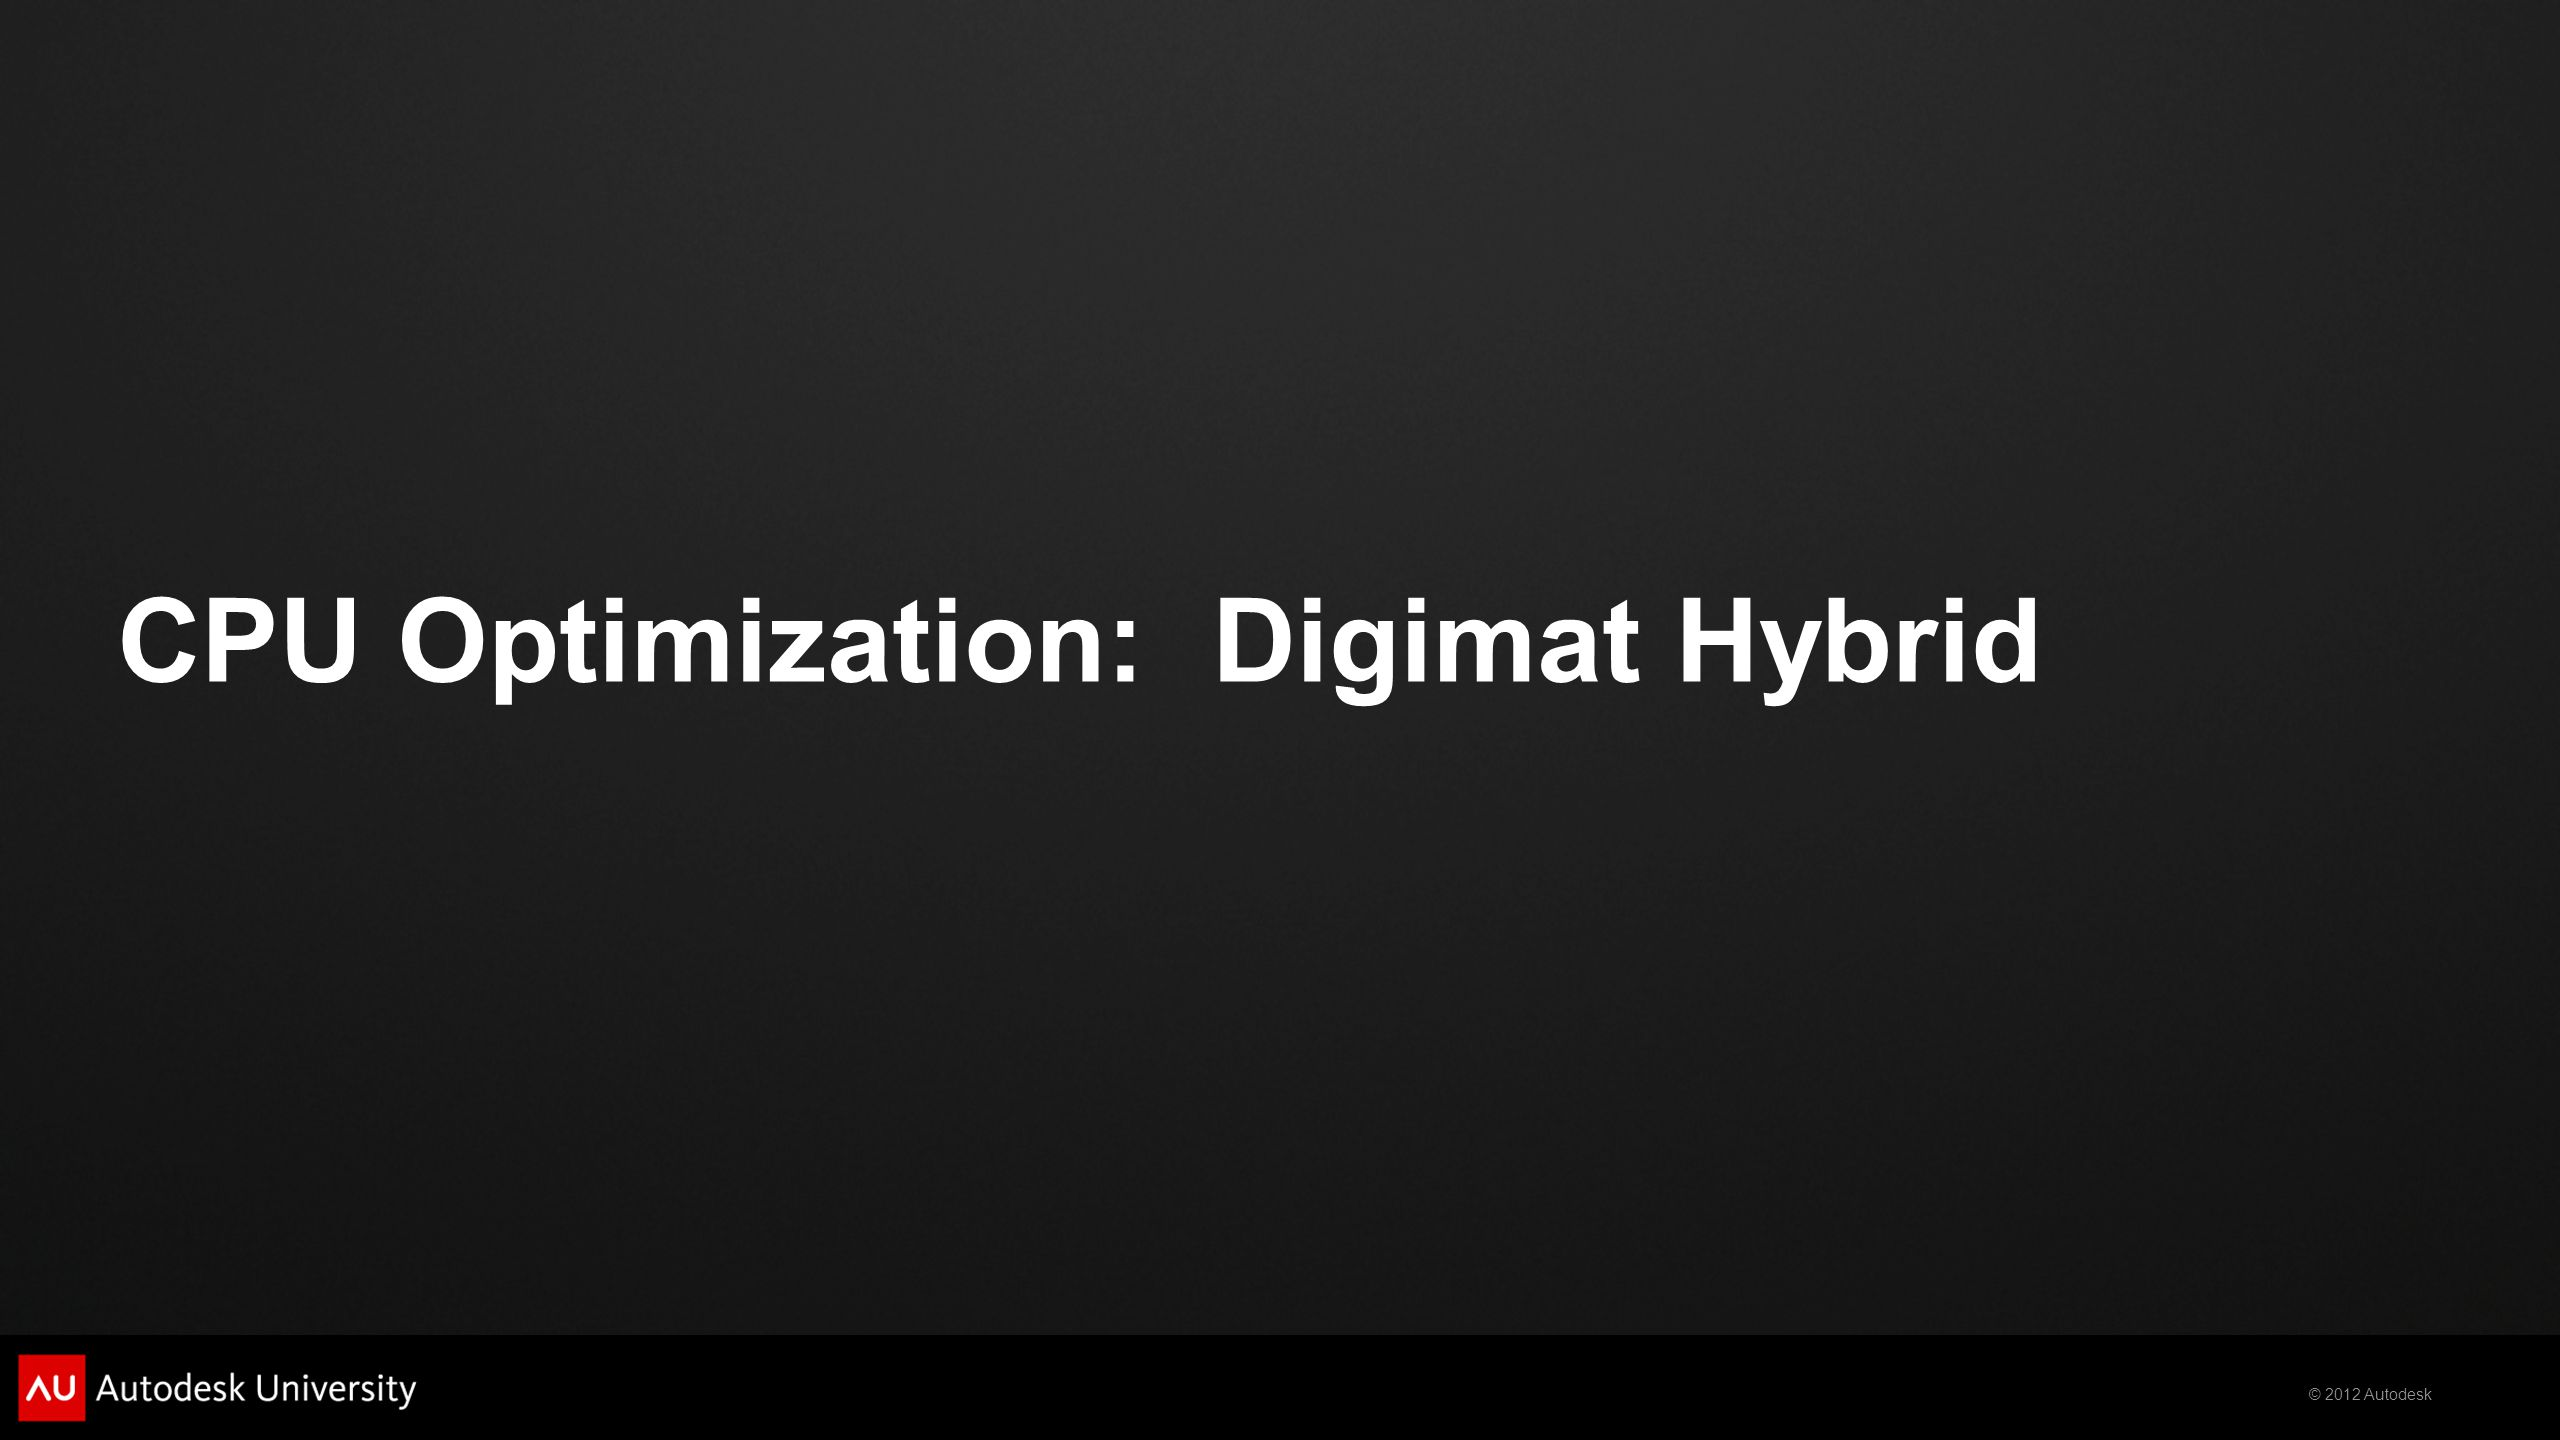 CPU Optimization: Digimat Hybrid